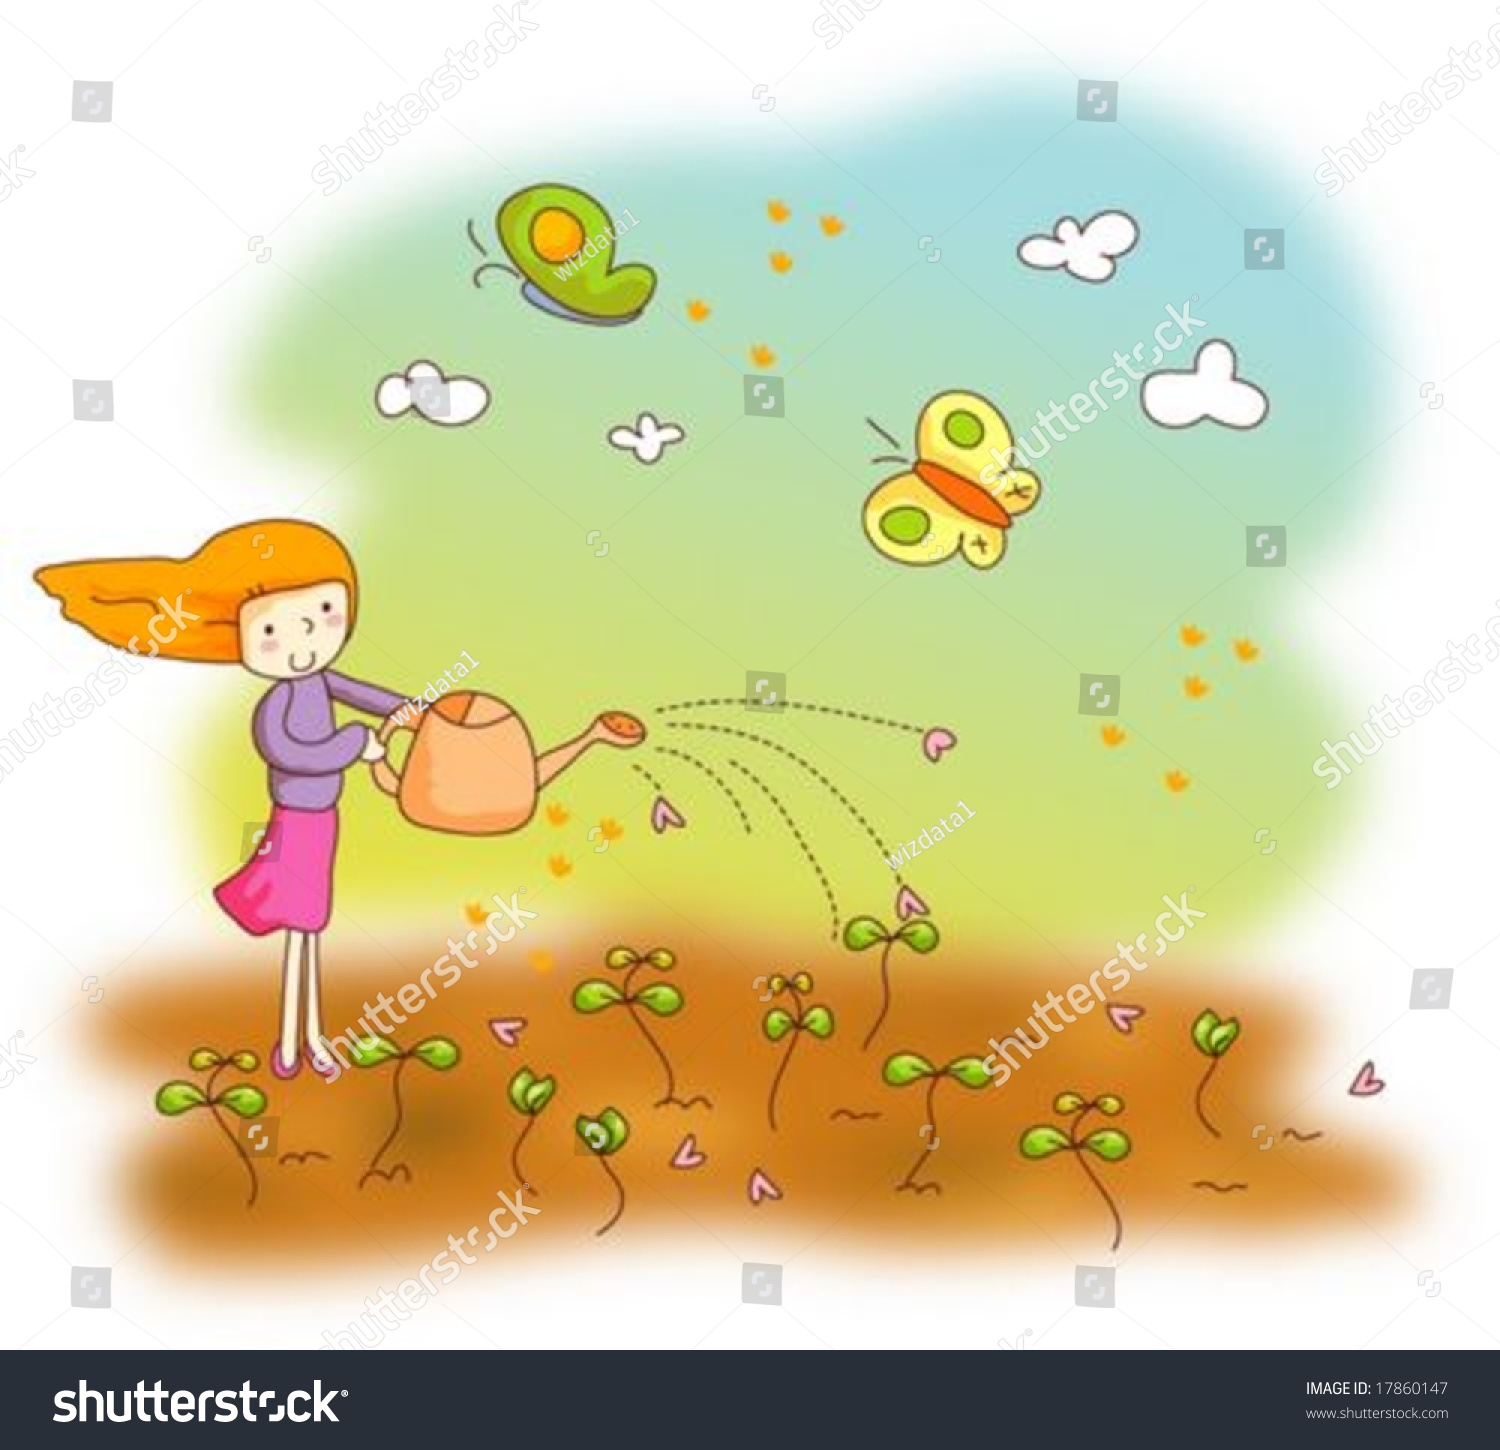 Flower garden sketch - Animation Sketch With Sweet Dream Watering Sprouts With A Smiling Young Female In Flower Garden